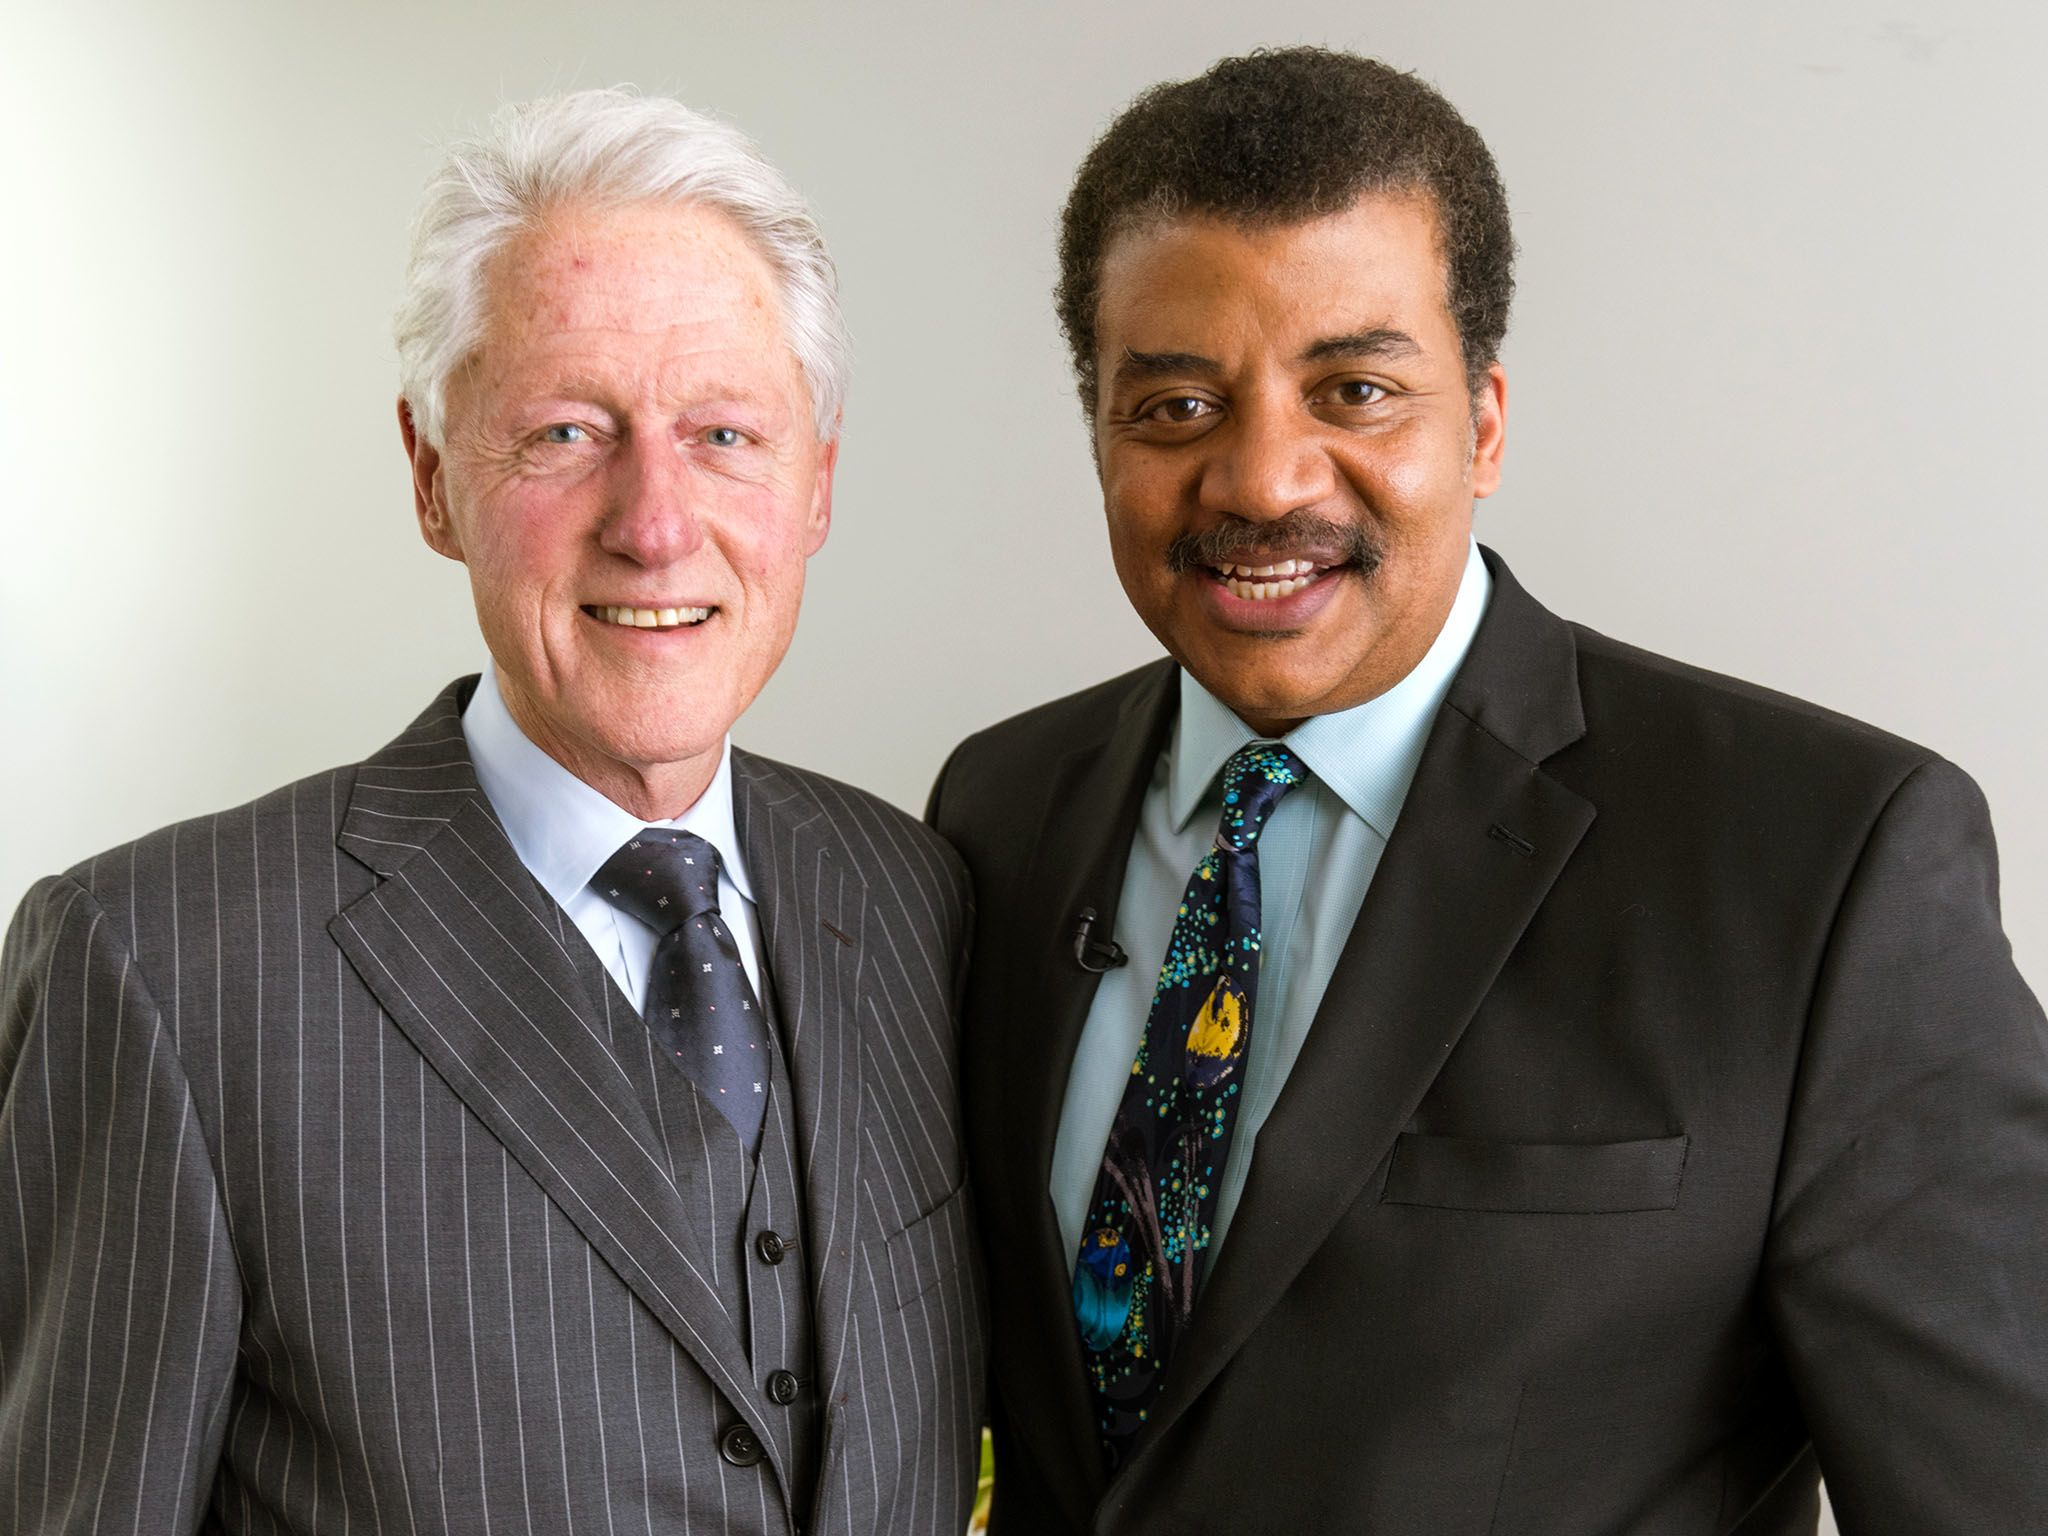 New York: Bill Clinton e Neil deGrasse Tyson. [Foto del giorno - gennaio 2016]